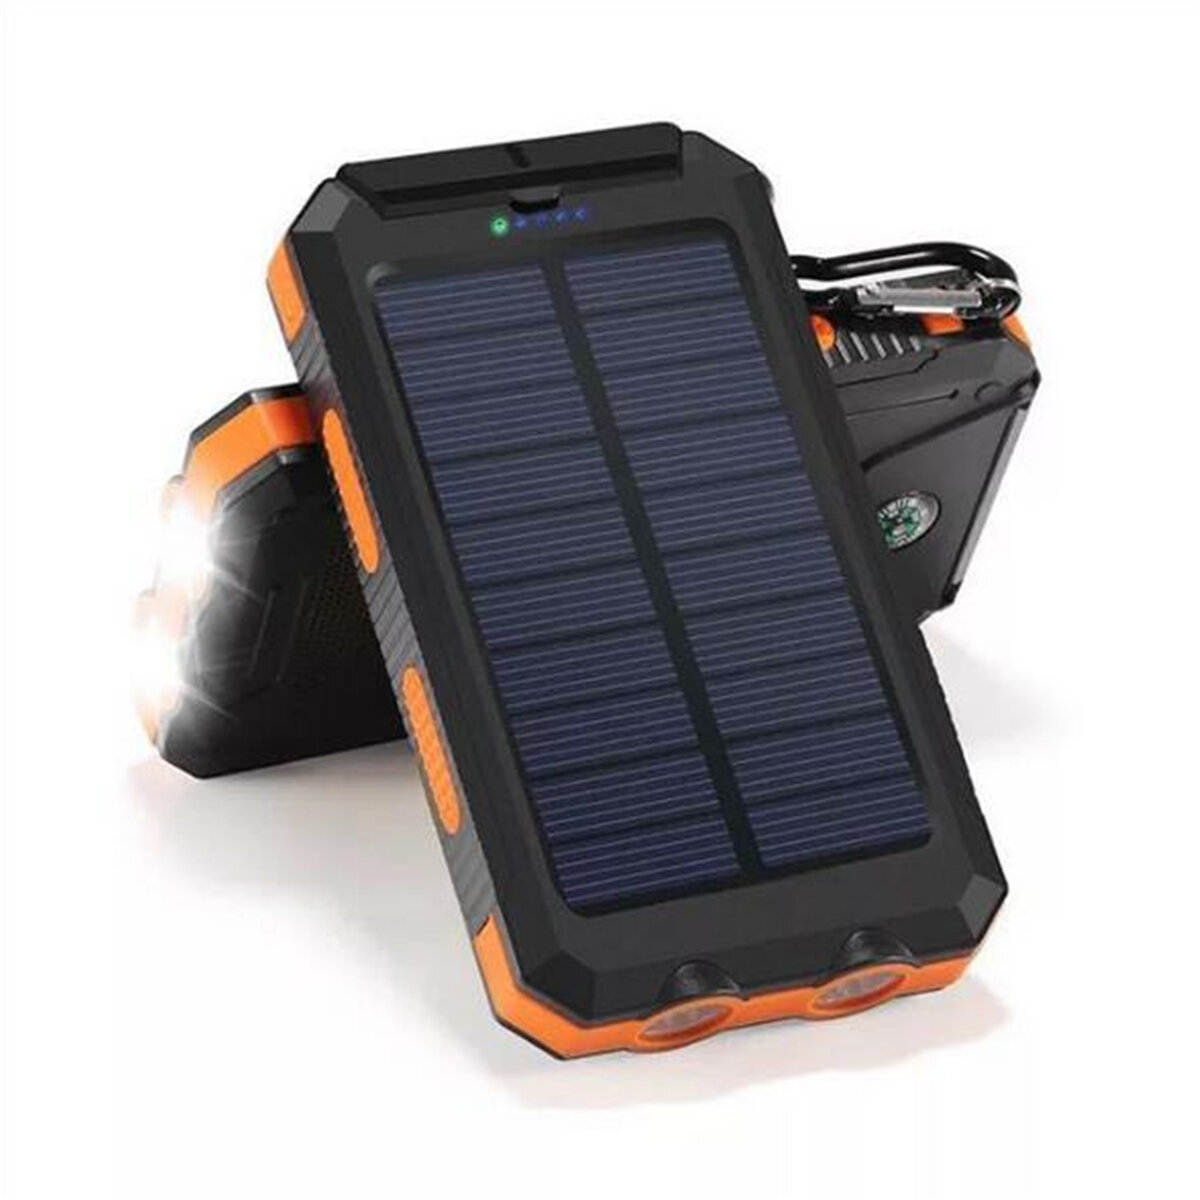 Bakeey Solar battery powerbank